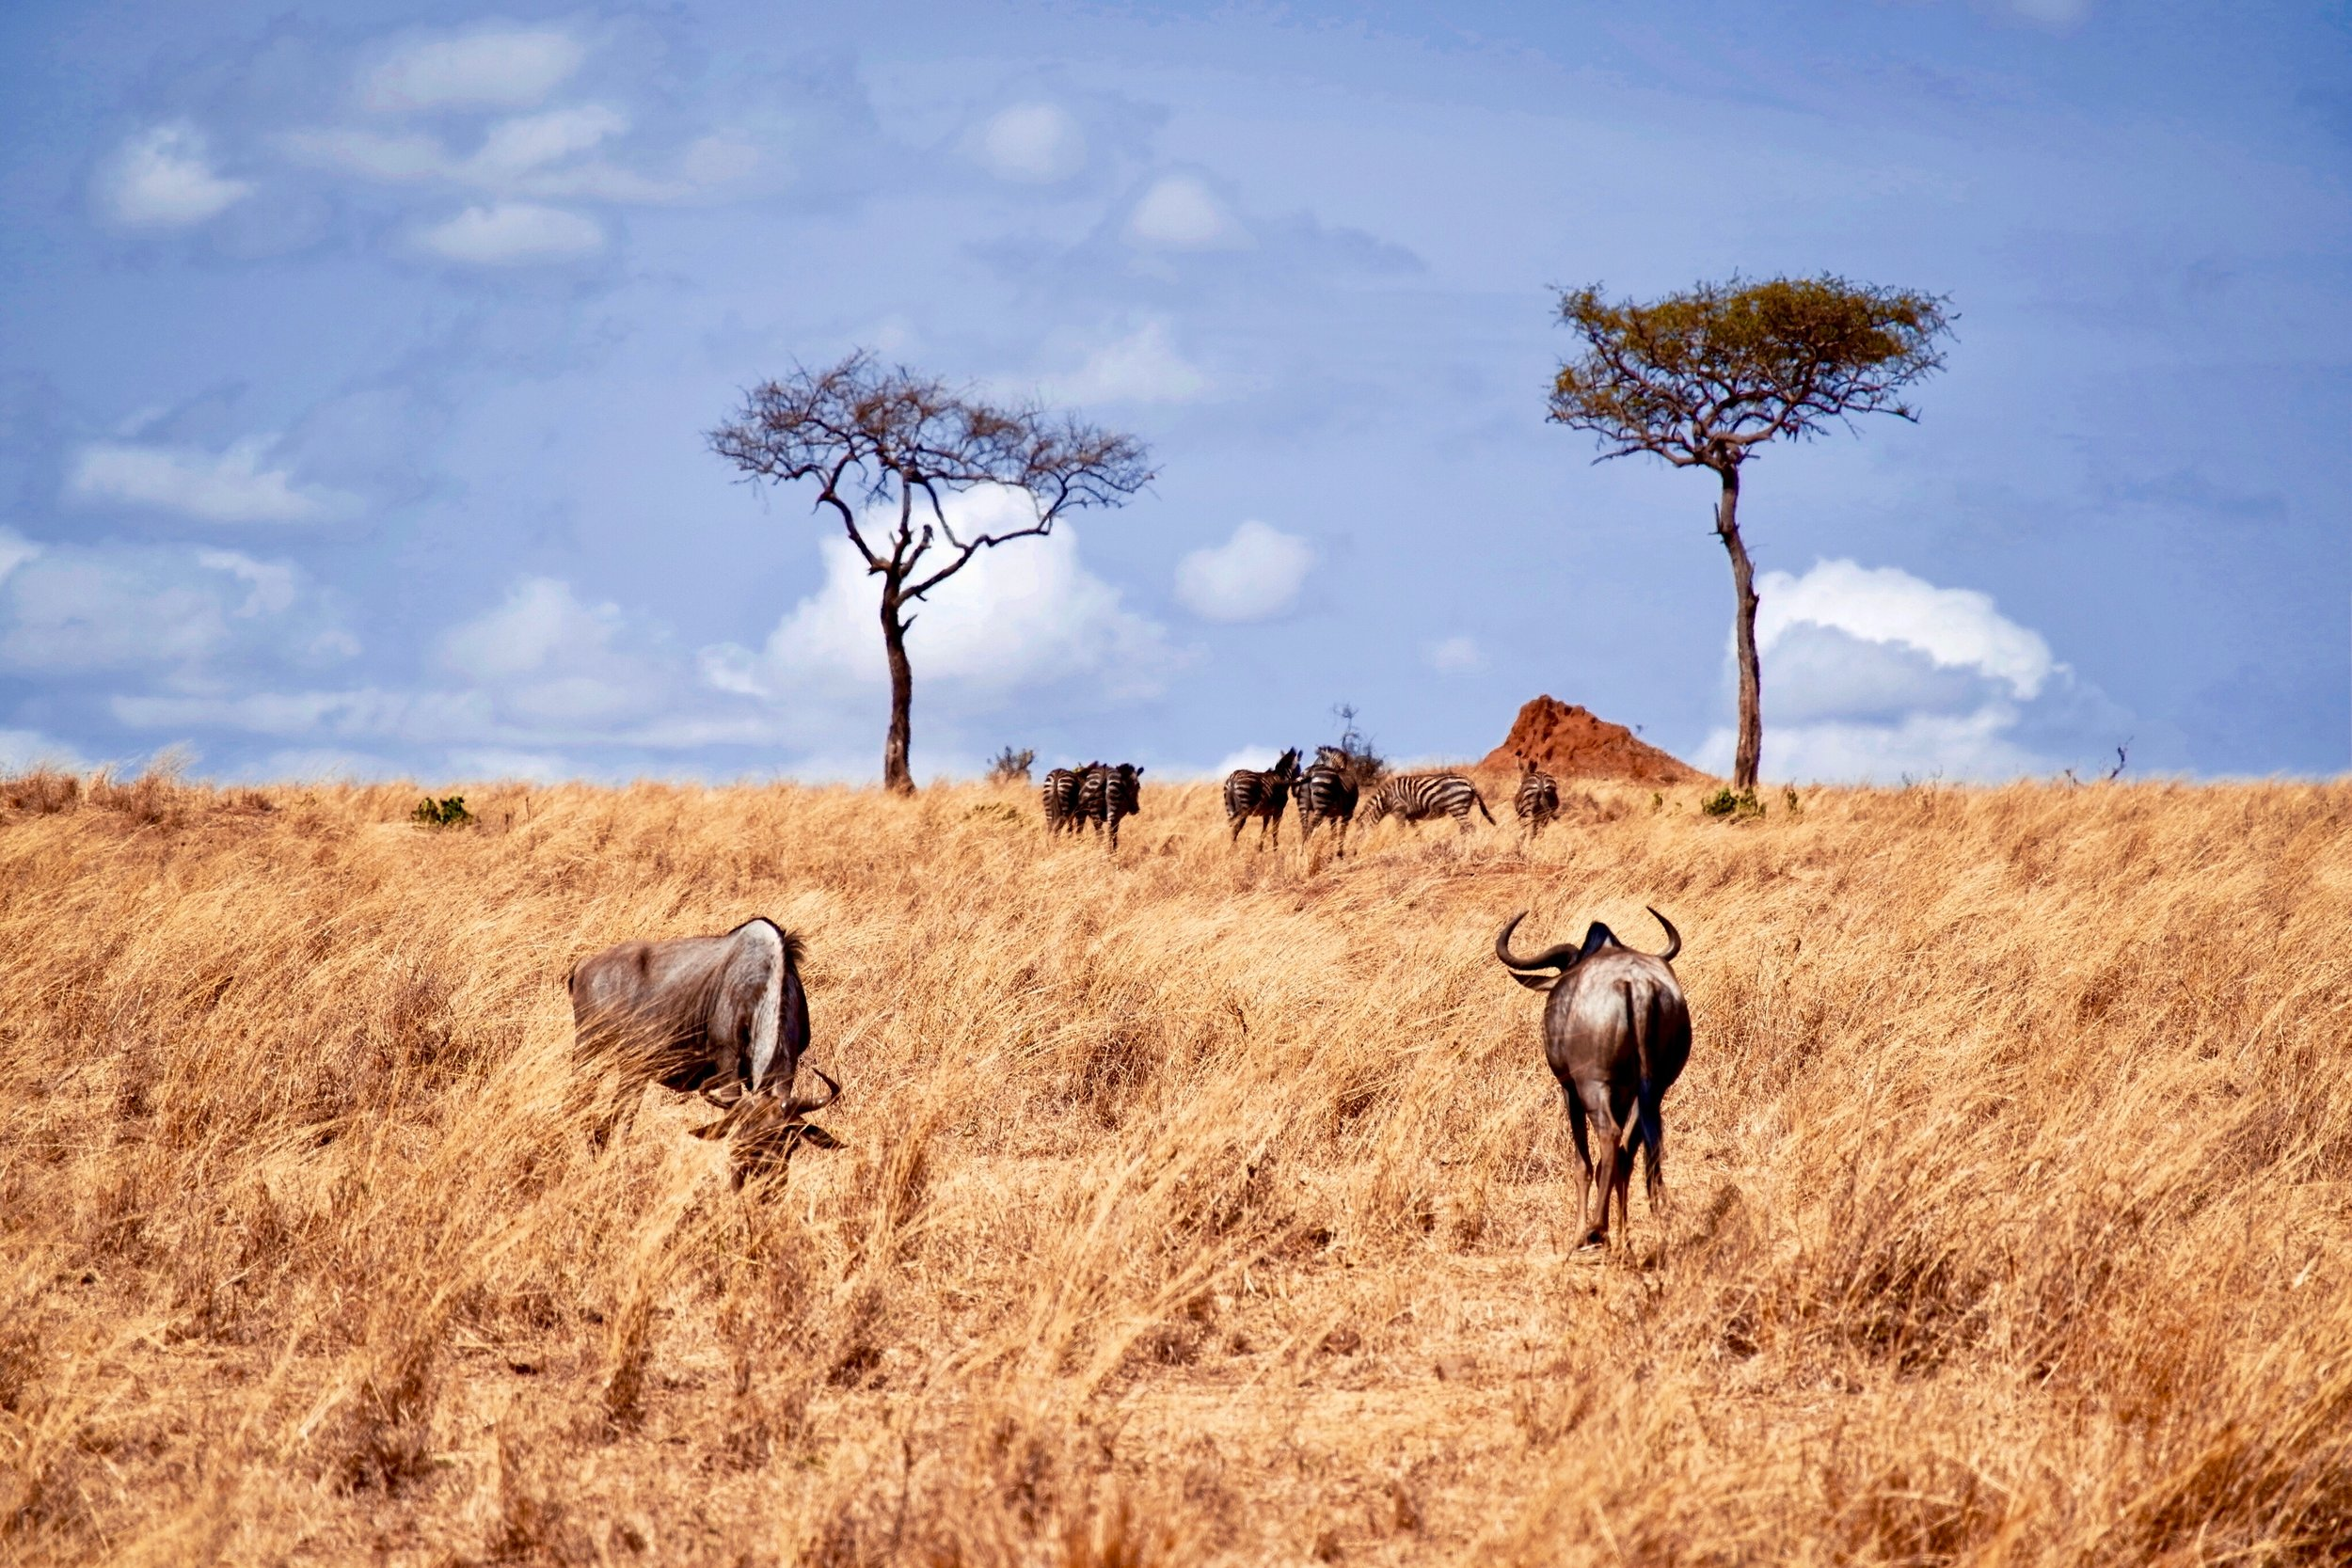 Ready to see Tanzania? - starting from $4,750 for 14 days